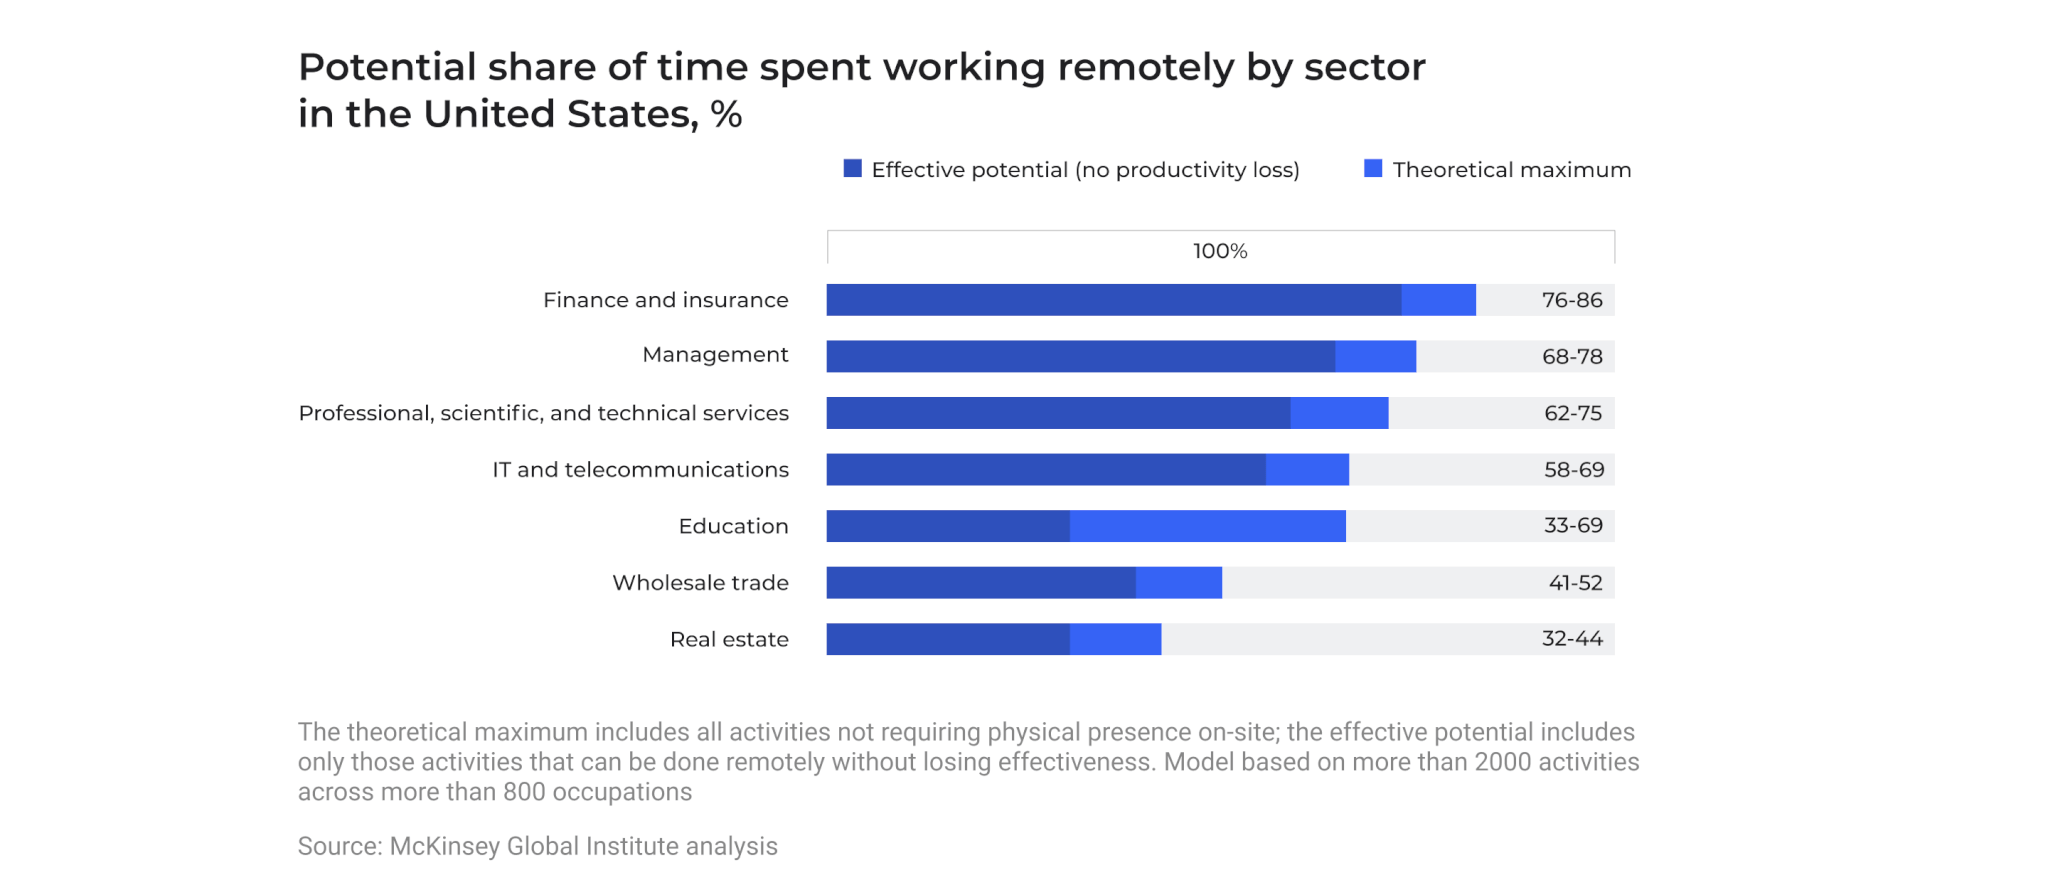 Potential share of time spent working remotely by sector in the United States, %